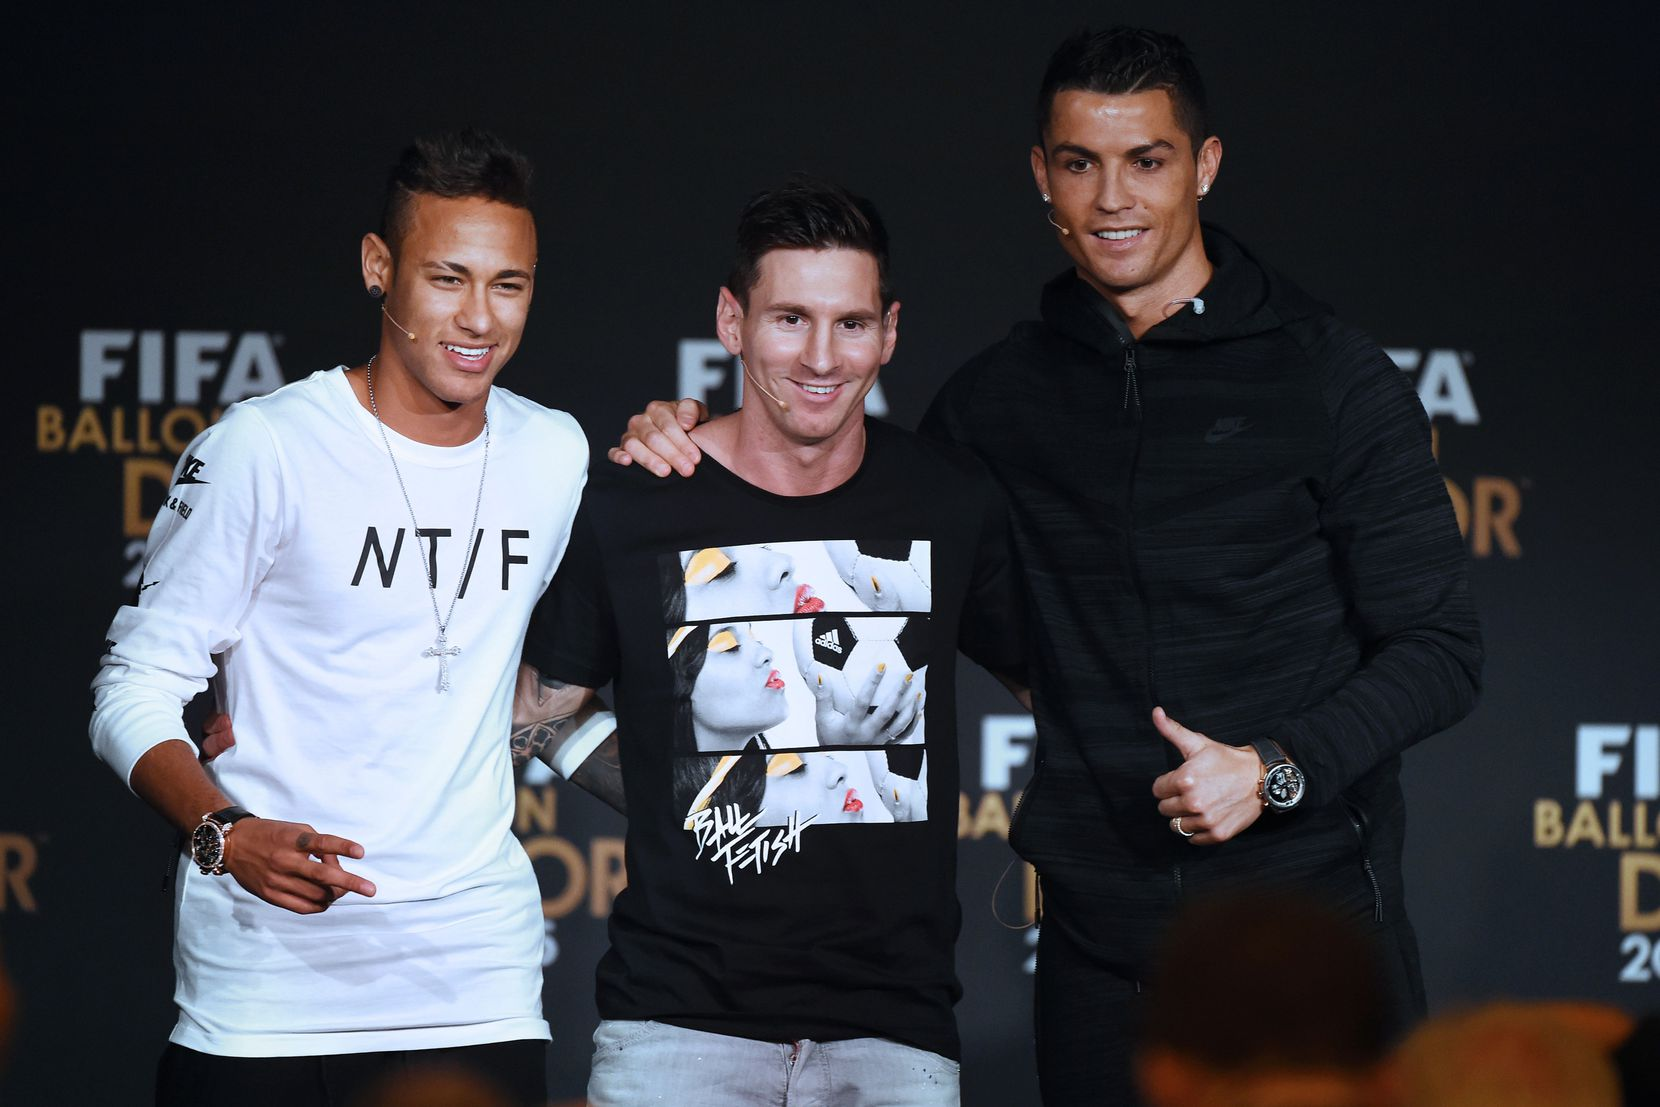 Los finalistas del Ballon d'Or 2015: Neymar, Messi y Cristiano. GETTY IMAGES